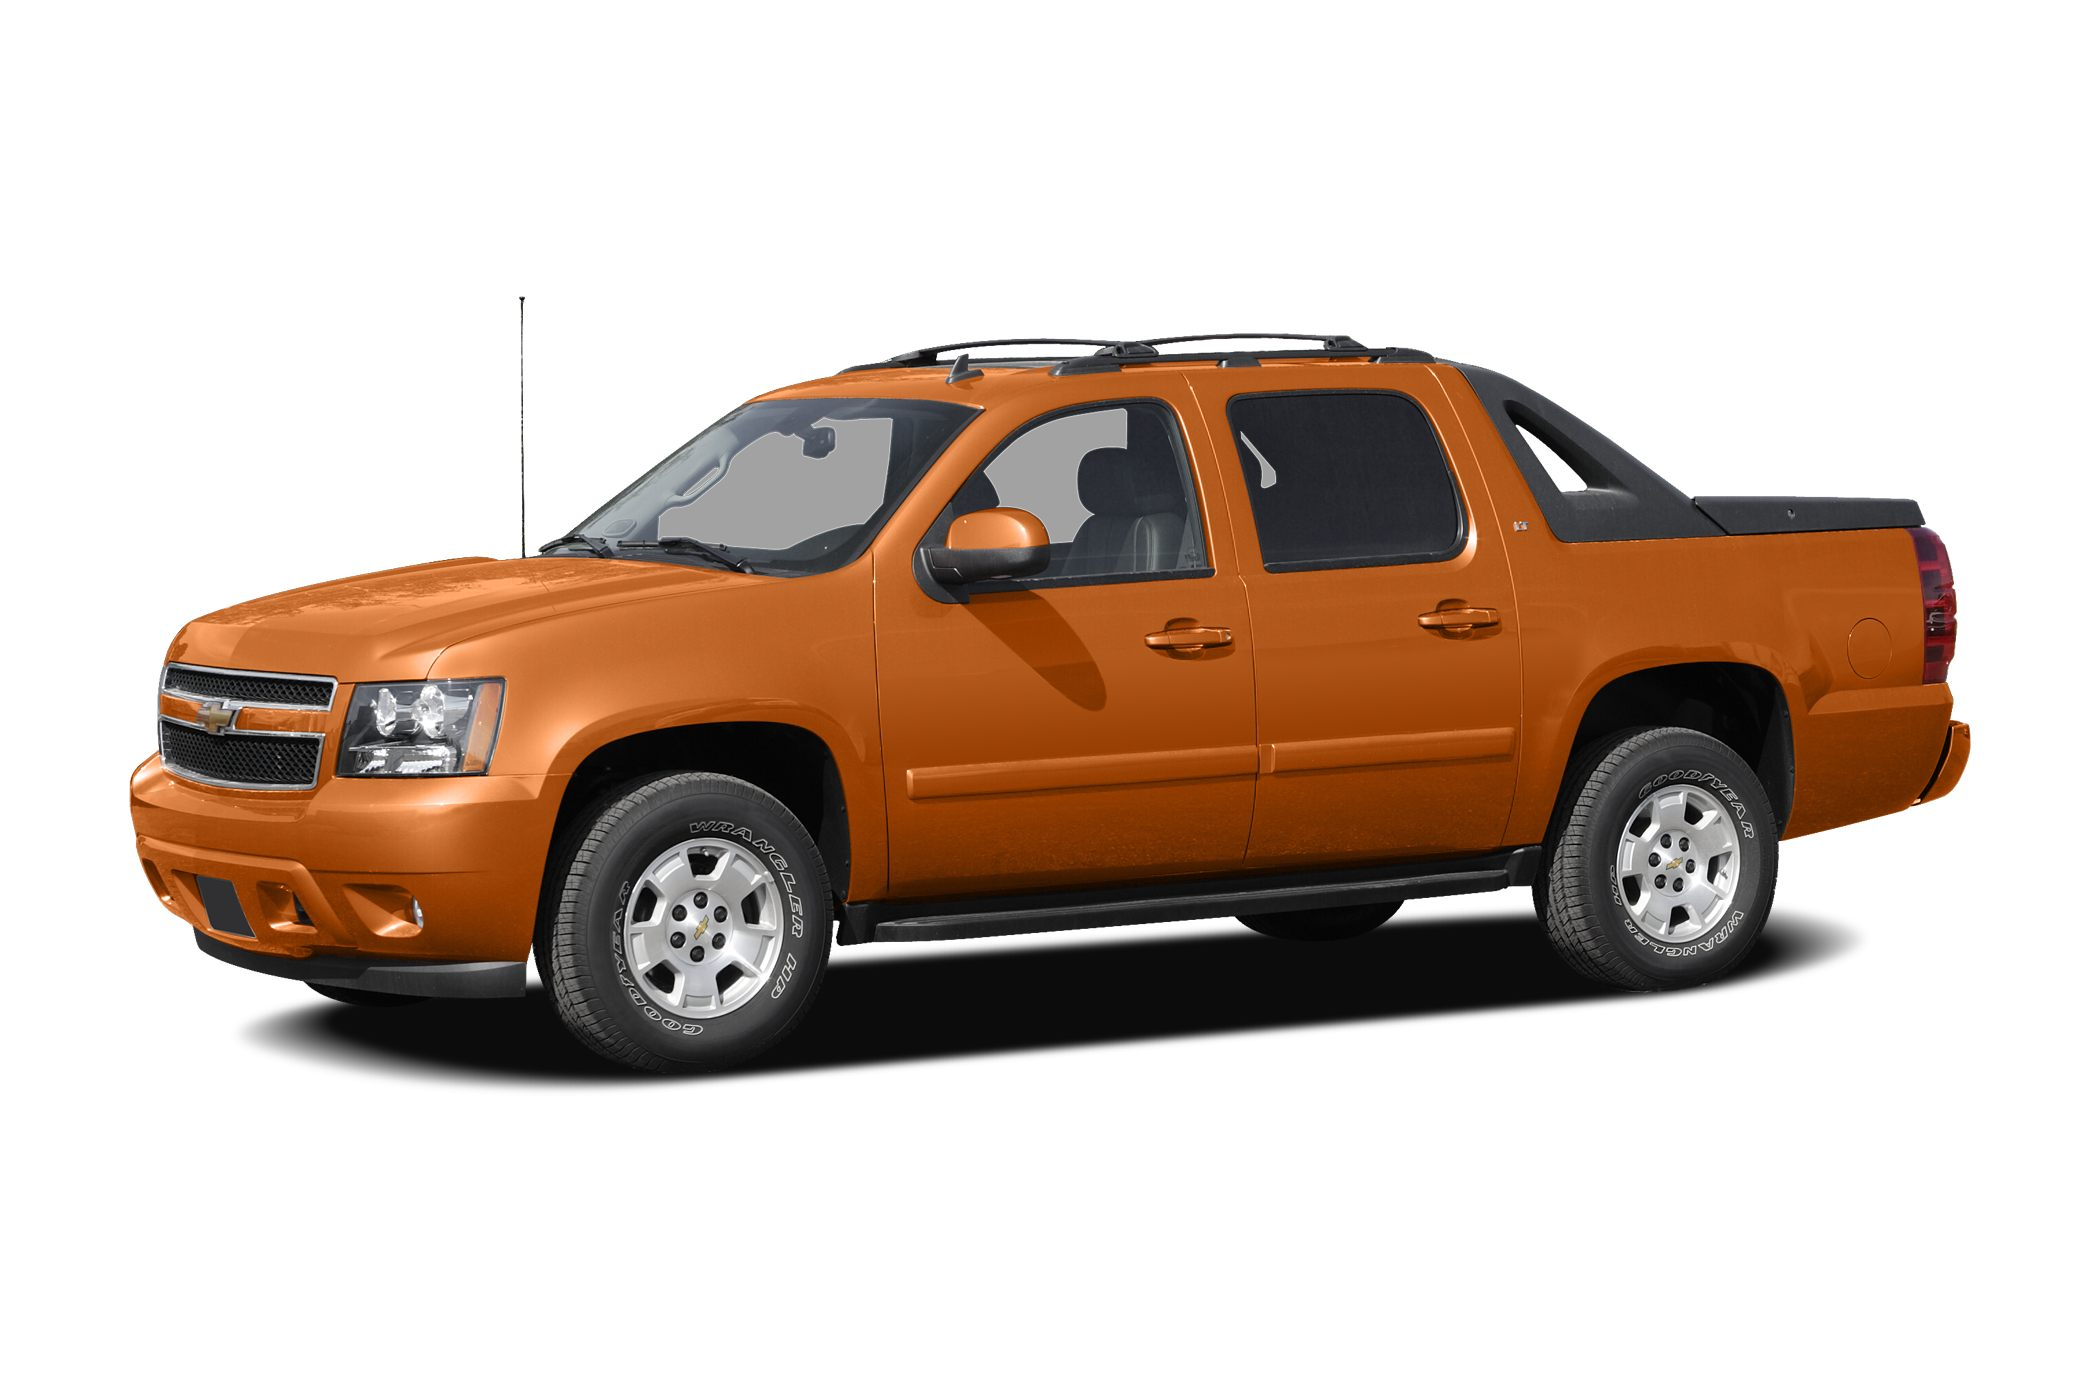 2007 Chevrolet Avalanche 1500 LT Crew Cab Pickup for sale in Lafayette for $20,500 with 66,277 miles